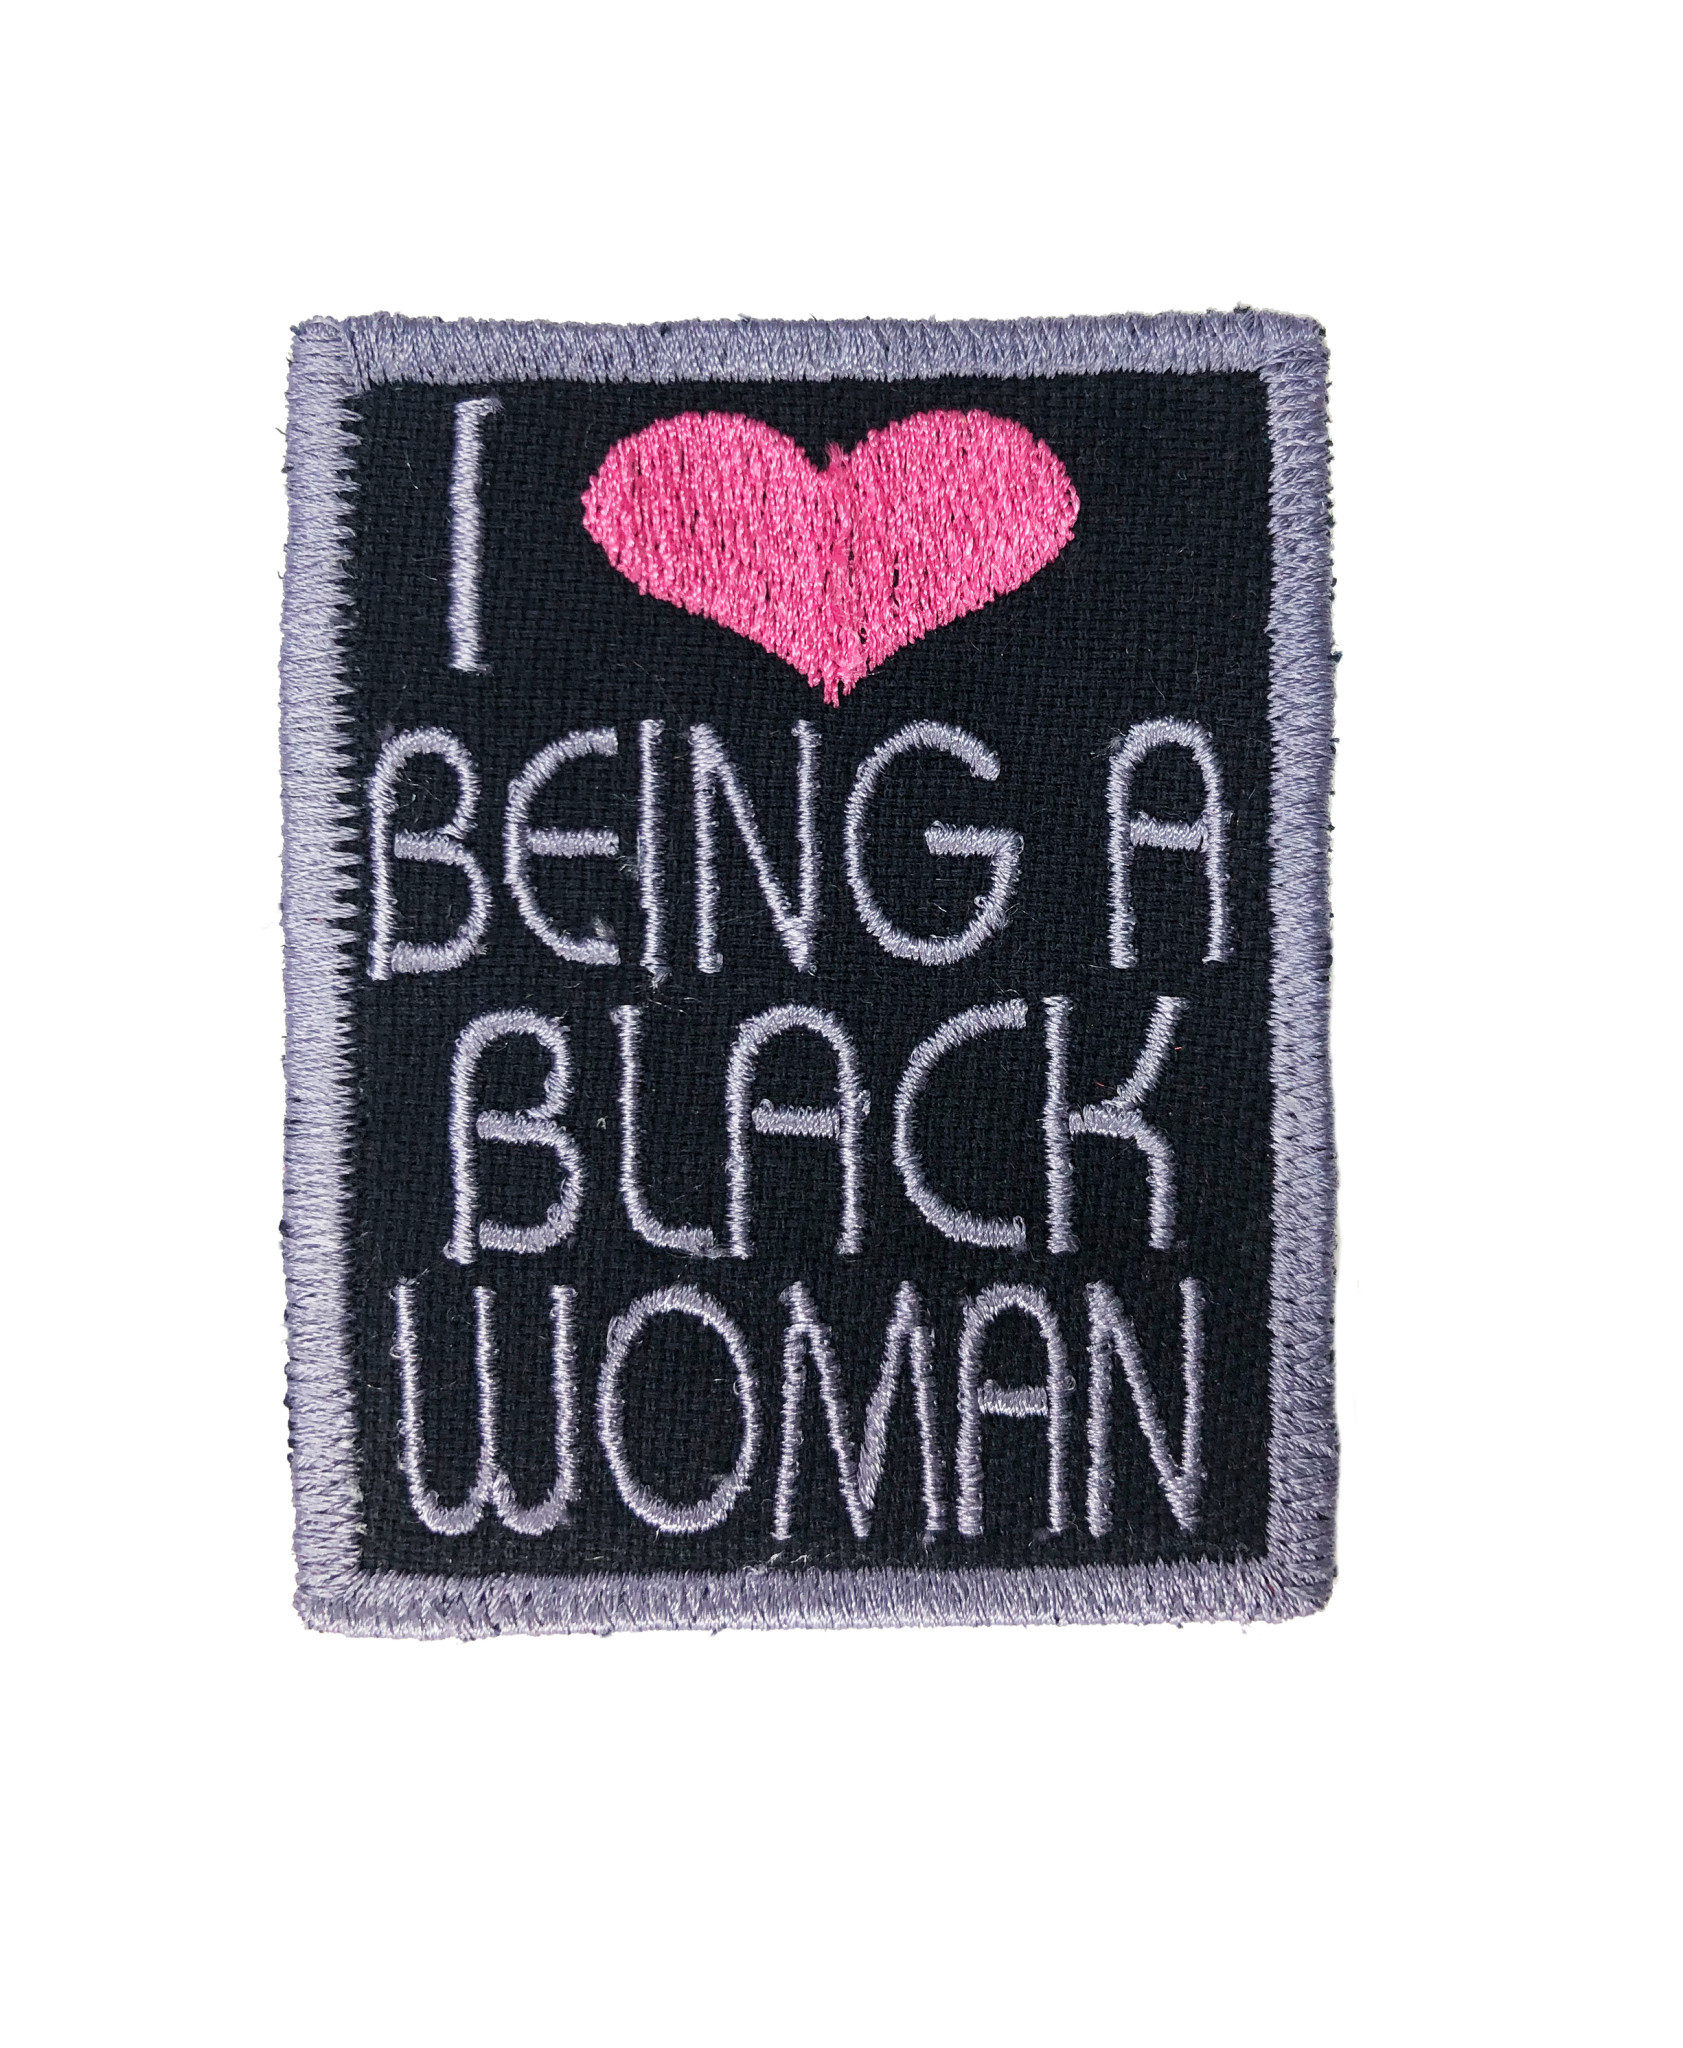 THE SHOP I LOVE BEING A BLACK WOMAN PATCHES-3